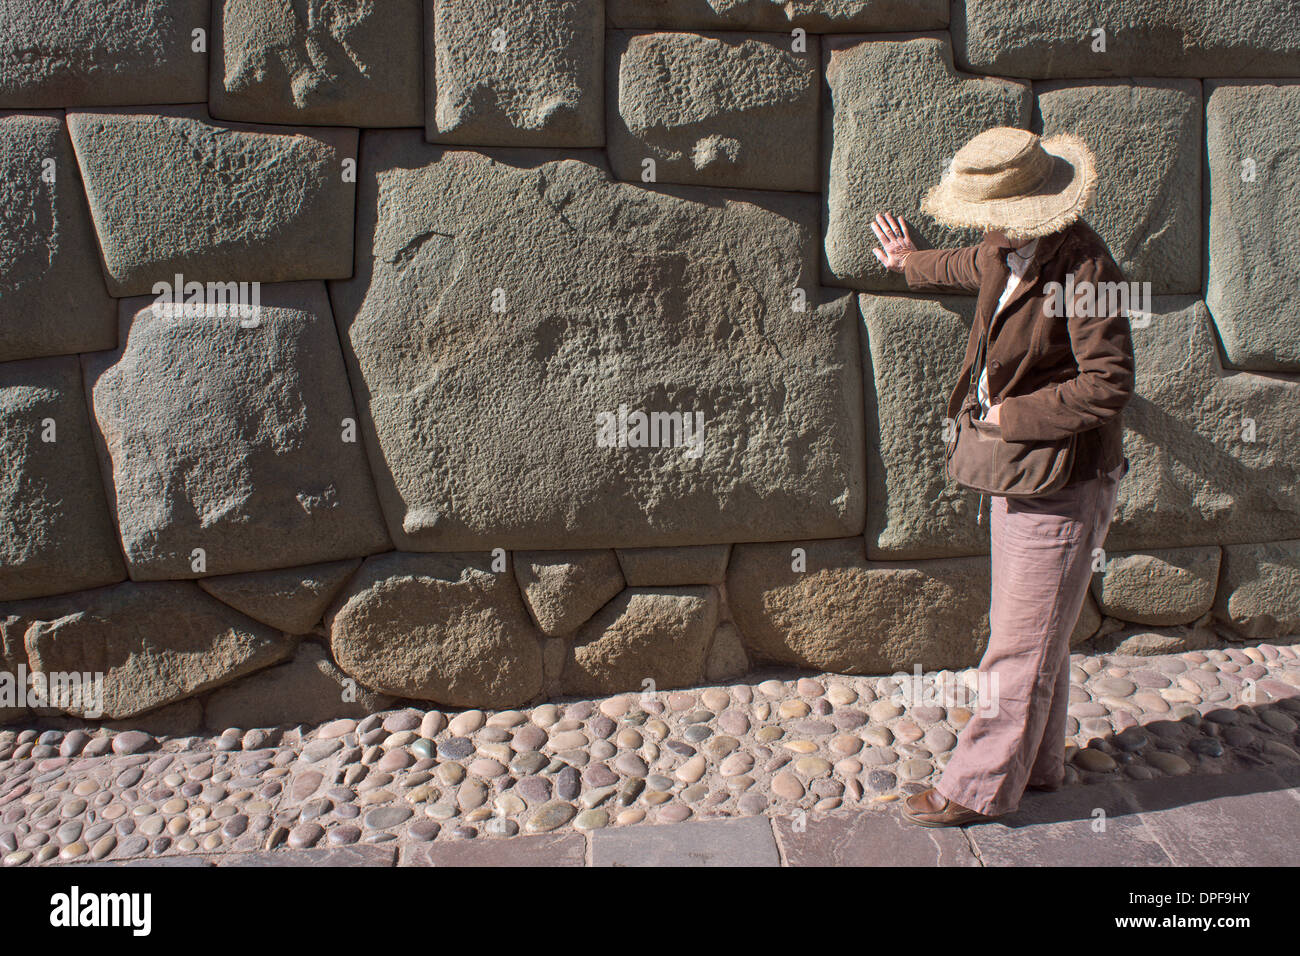 Magnificent example of Inca craftsmanship shown in this 12 sided stone, Peru, South America - Stock Image